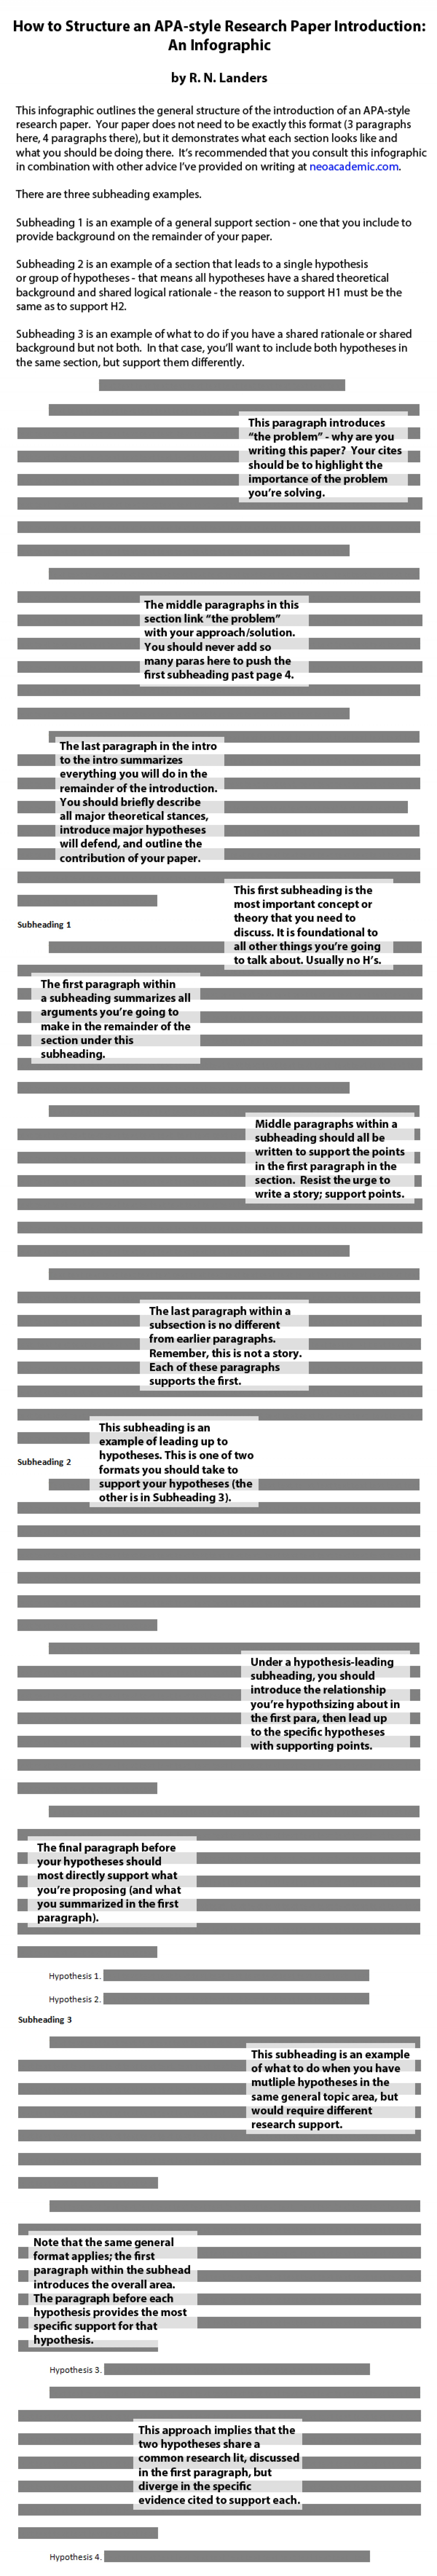 007 Intro Infographic2 Research Paper Writingn Introduction To Top Writing An A Effective For How Write Powerpoint Ppt 1920